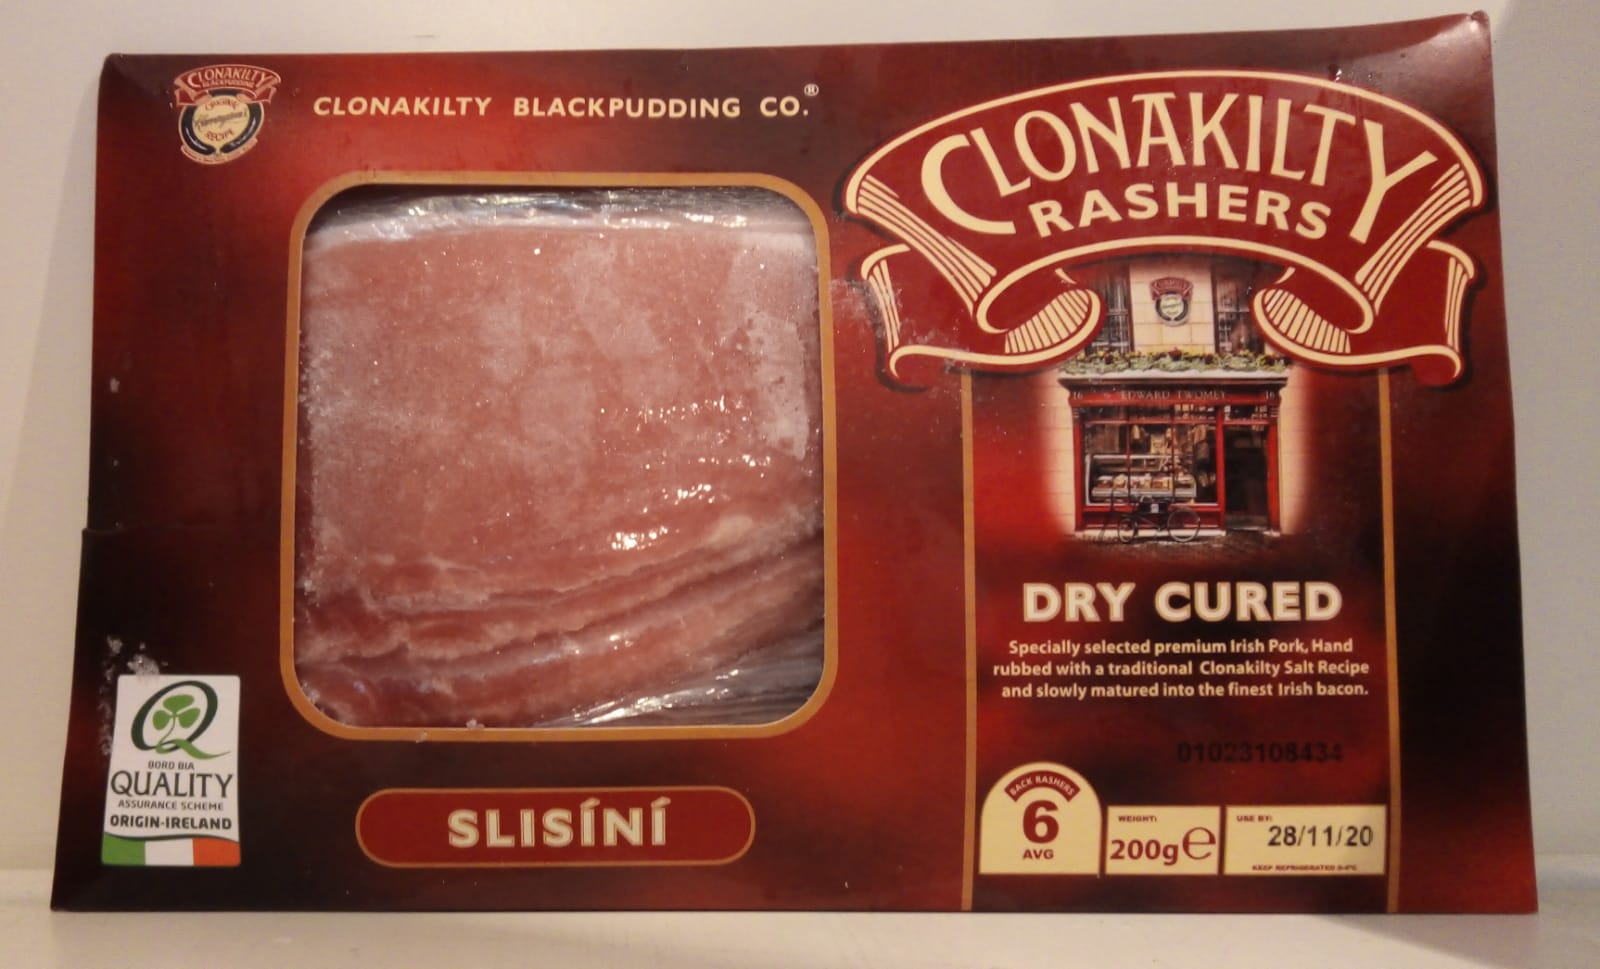 Clonakilty Rashers Dry Cured 200g